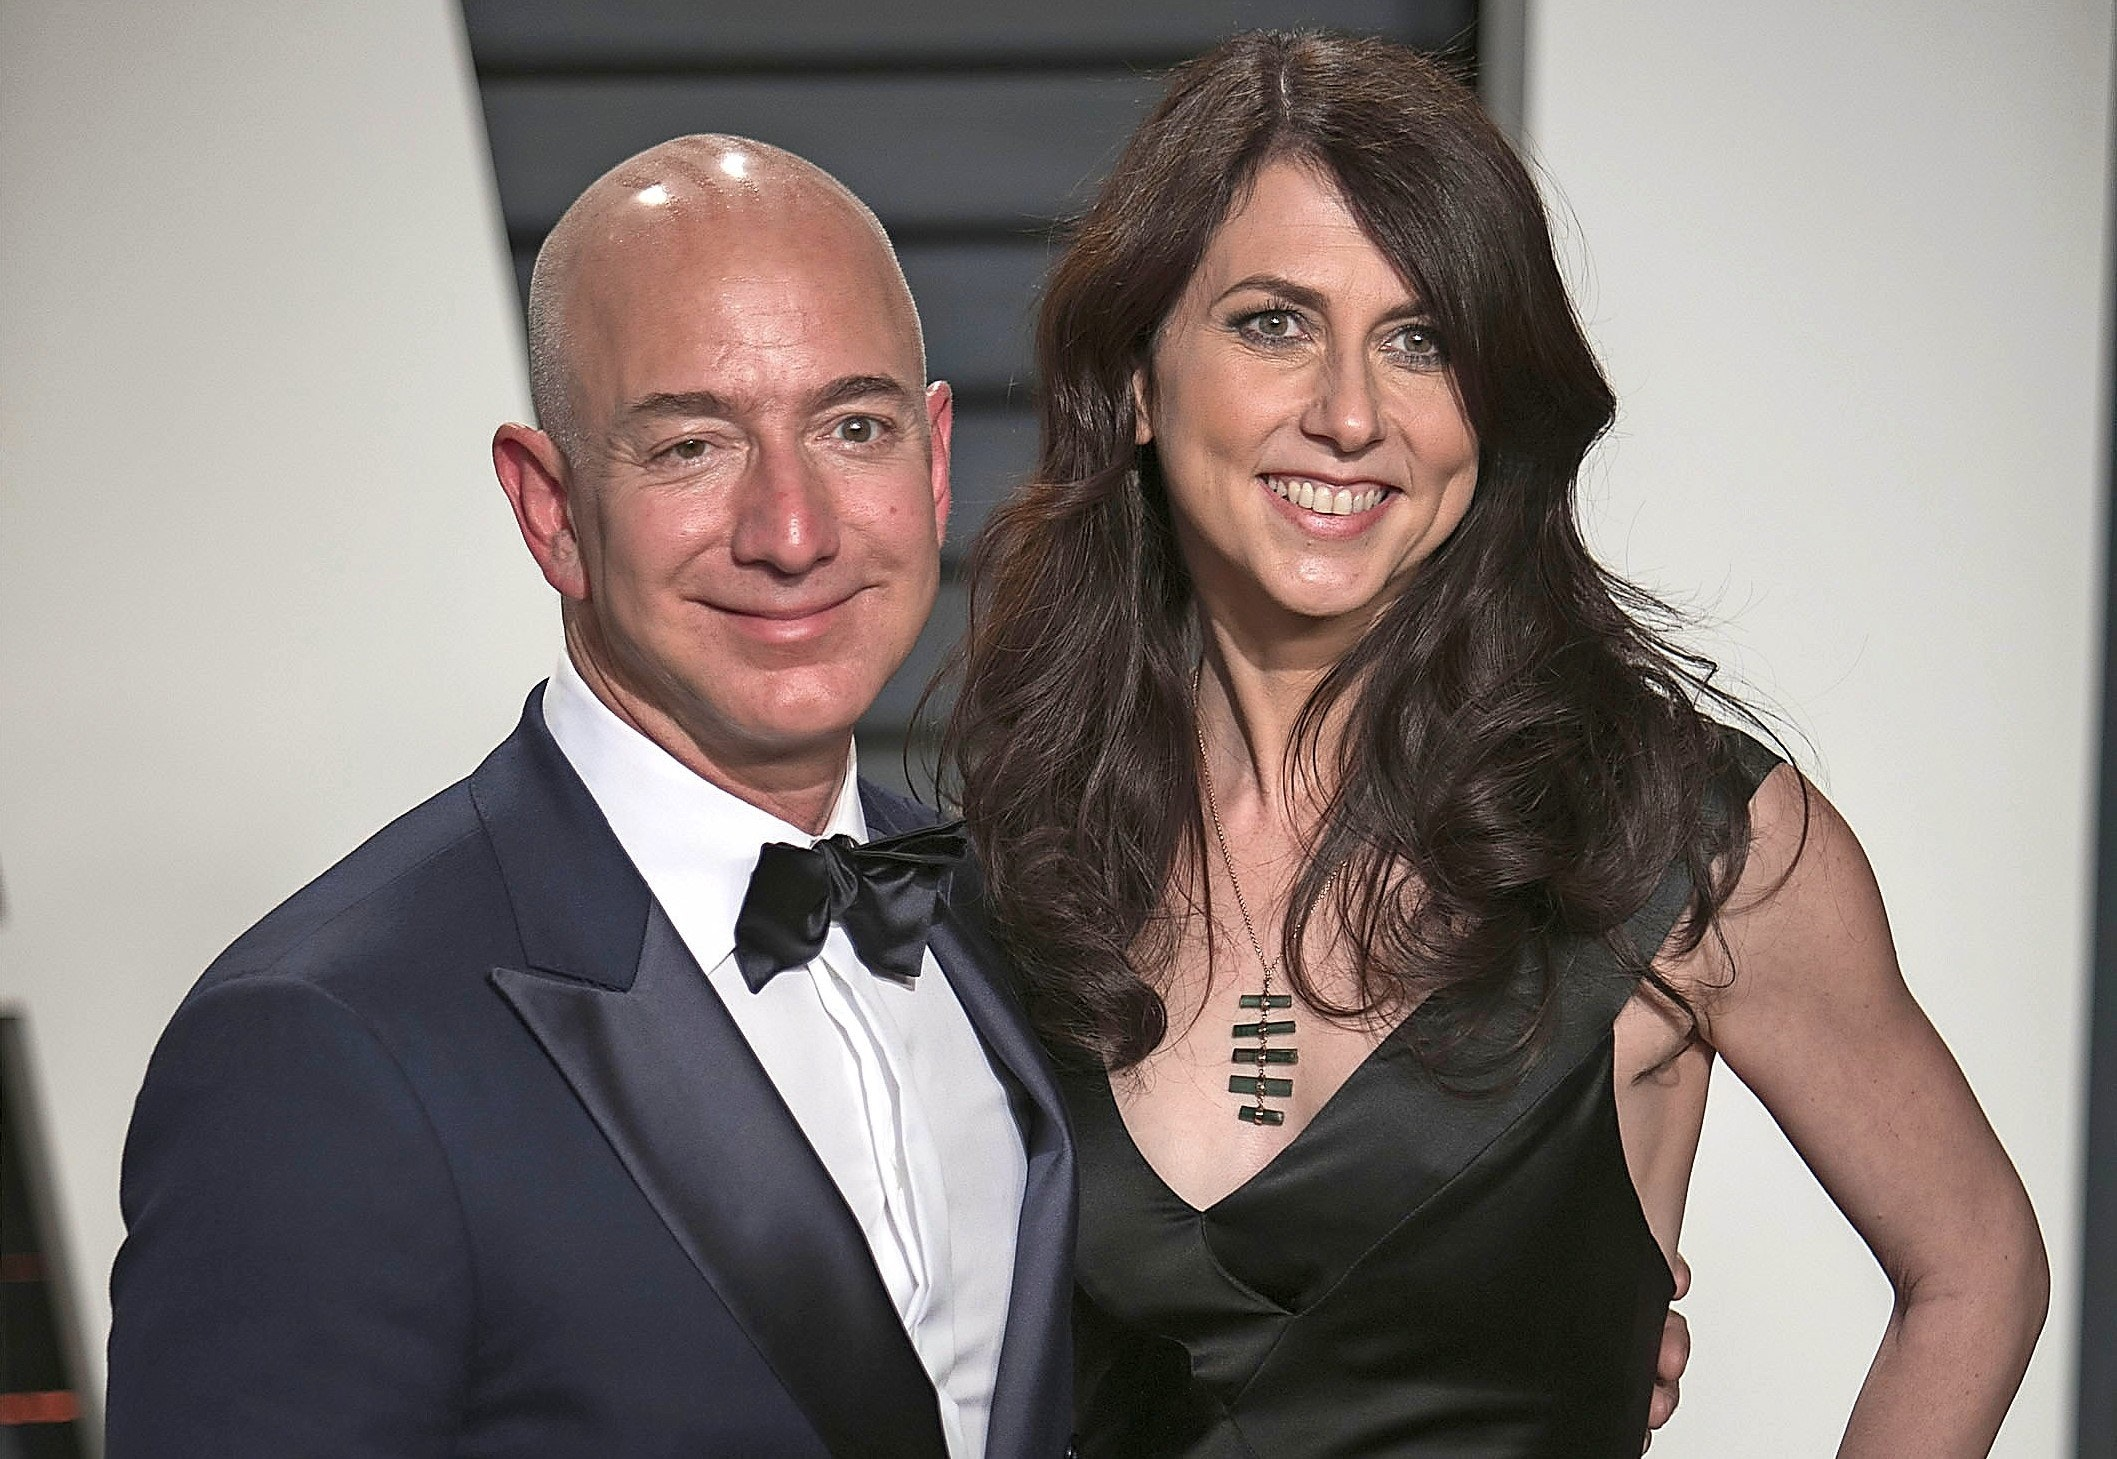 January 10, 2019 - Beverly Hills, California, United States of America - Amazon CEO, Jeff Bezos to divorce wife, MacKenzie Bezos as he has revealed a relationship with TV personality and actress Lauren Sanchez.  FILE PHOTO: Jeff Bezos and wife MacKenzie Bezos on the red carpet at the 2017 Vanity Fair Oscar Party held at the Wallis Annenberg Center in Beverly Hills, California, Sunday February 26, 2017. JAVIER ROJAS/PI (Credit Image: ? Prensa Internacional via ZUMA Wire)